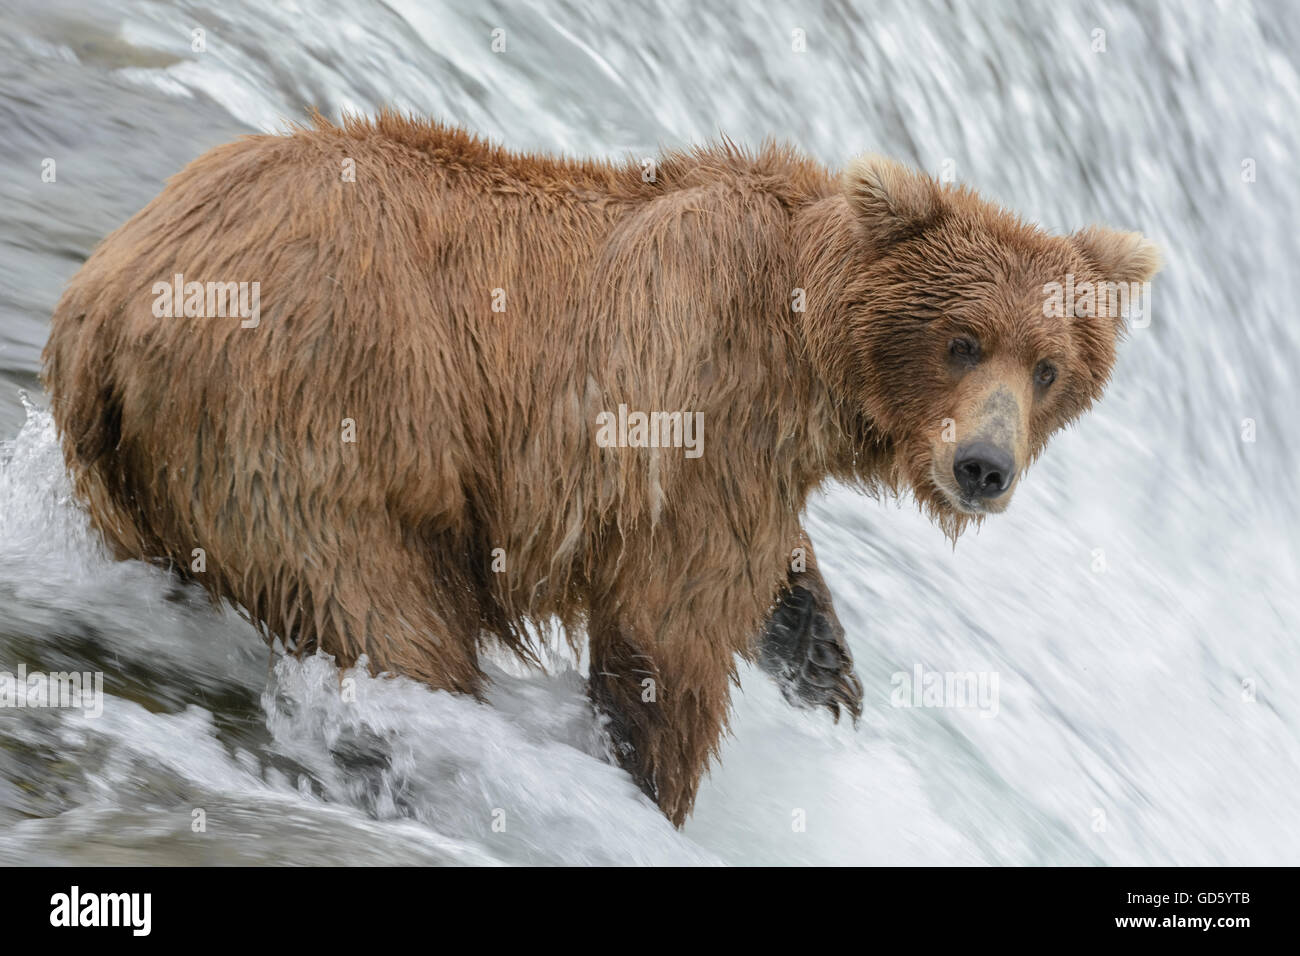 Pêcher le saumon de l'ours grizzli en haut d'une cascade. Brook Falls, Alaska Photo Stock